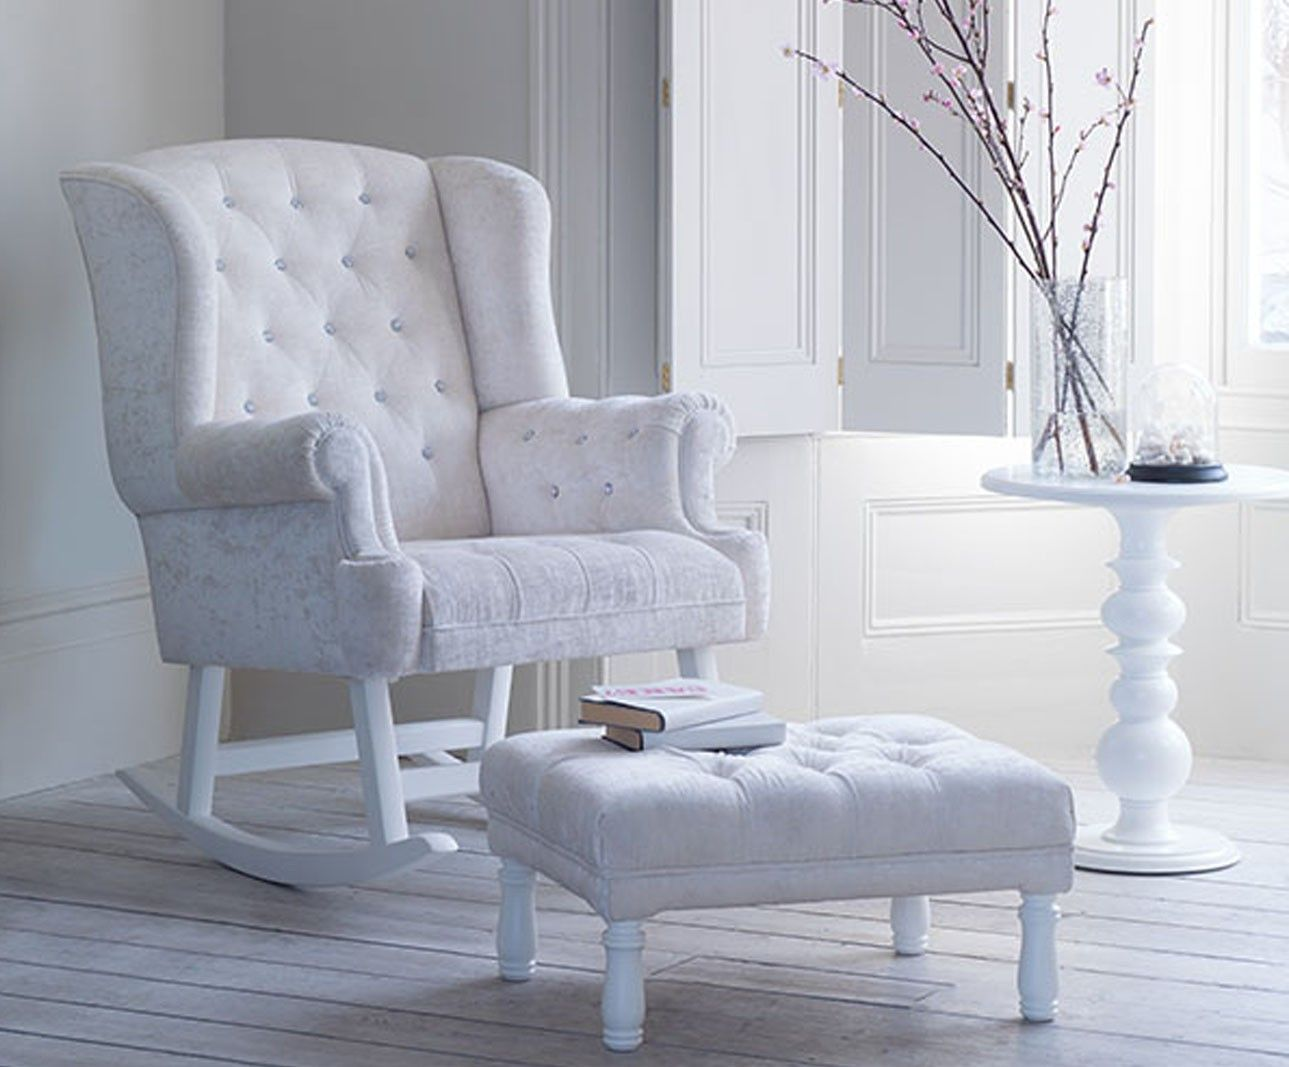 Opulence Rocking Chair | Rocking chair nursery, Chair design